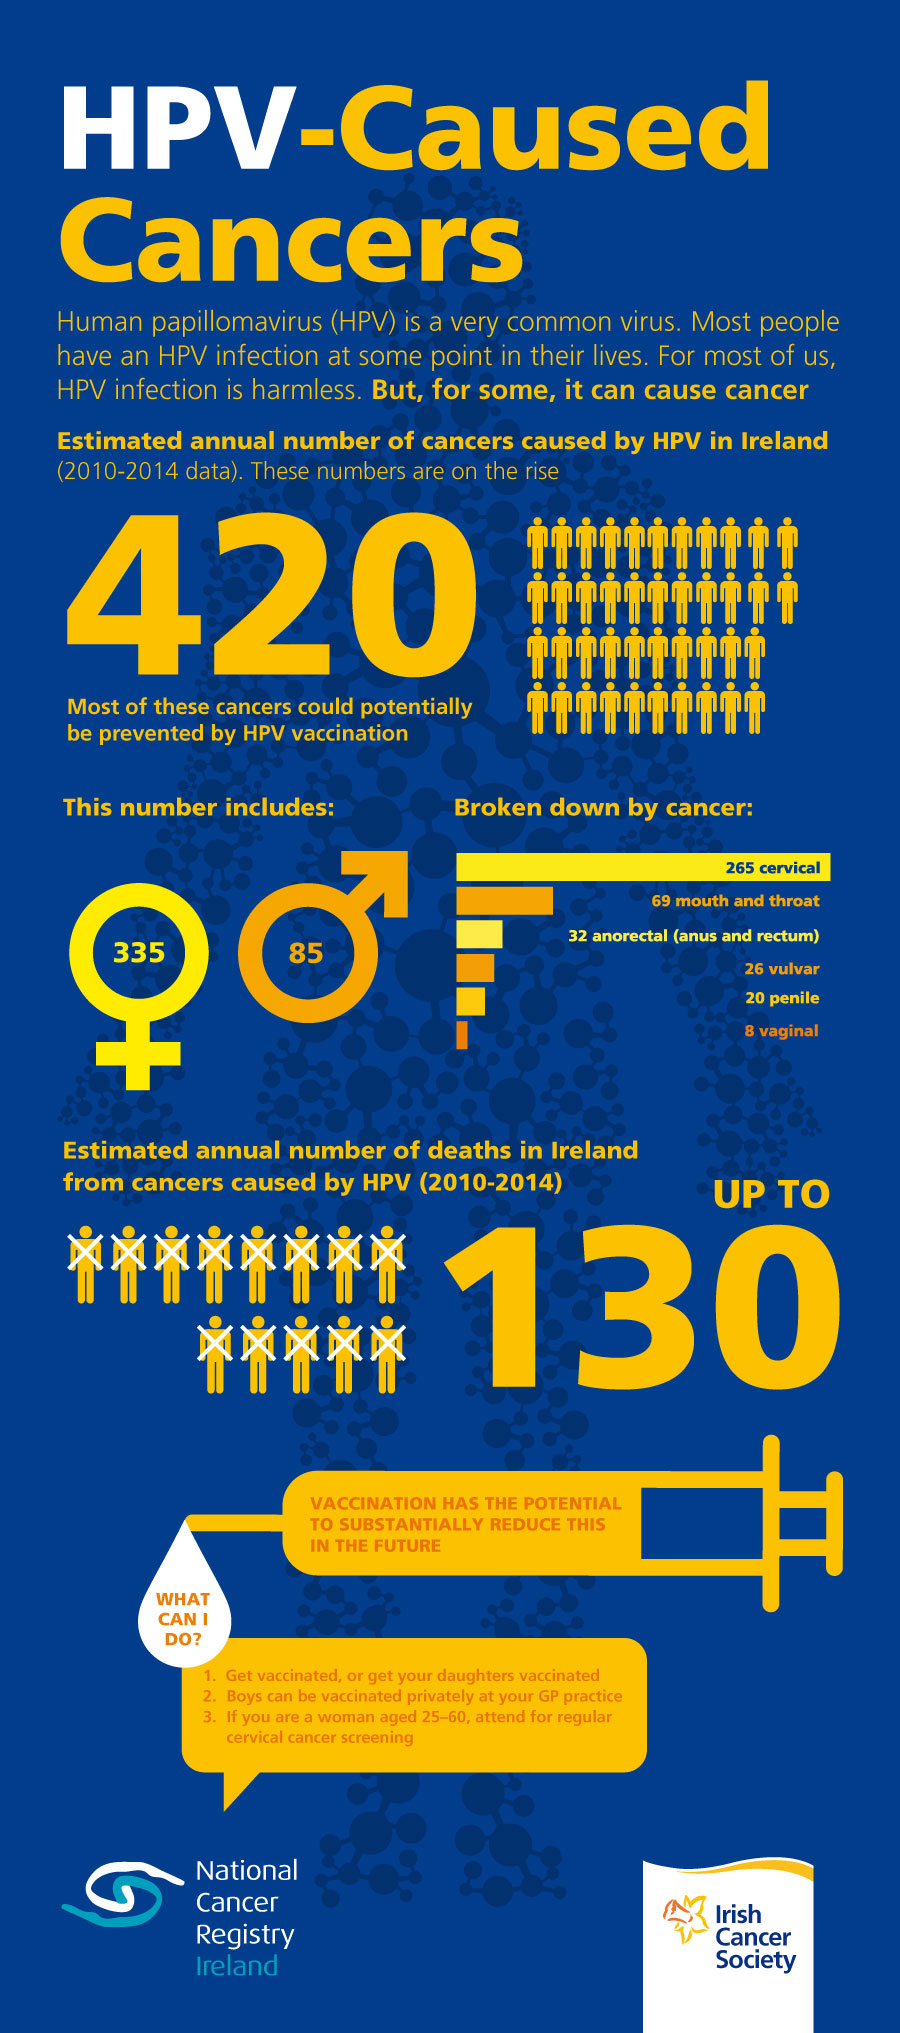 HPV-Caused Cancers Infographic